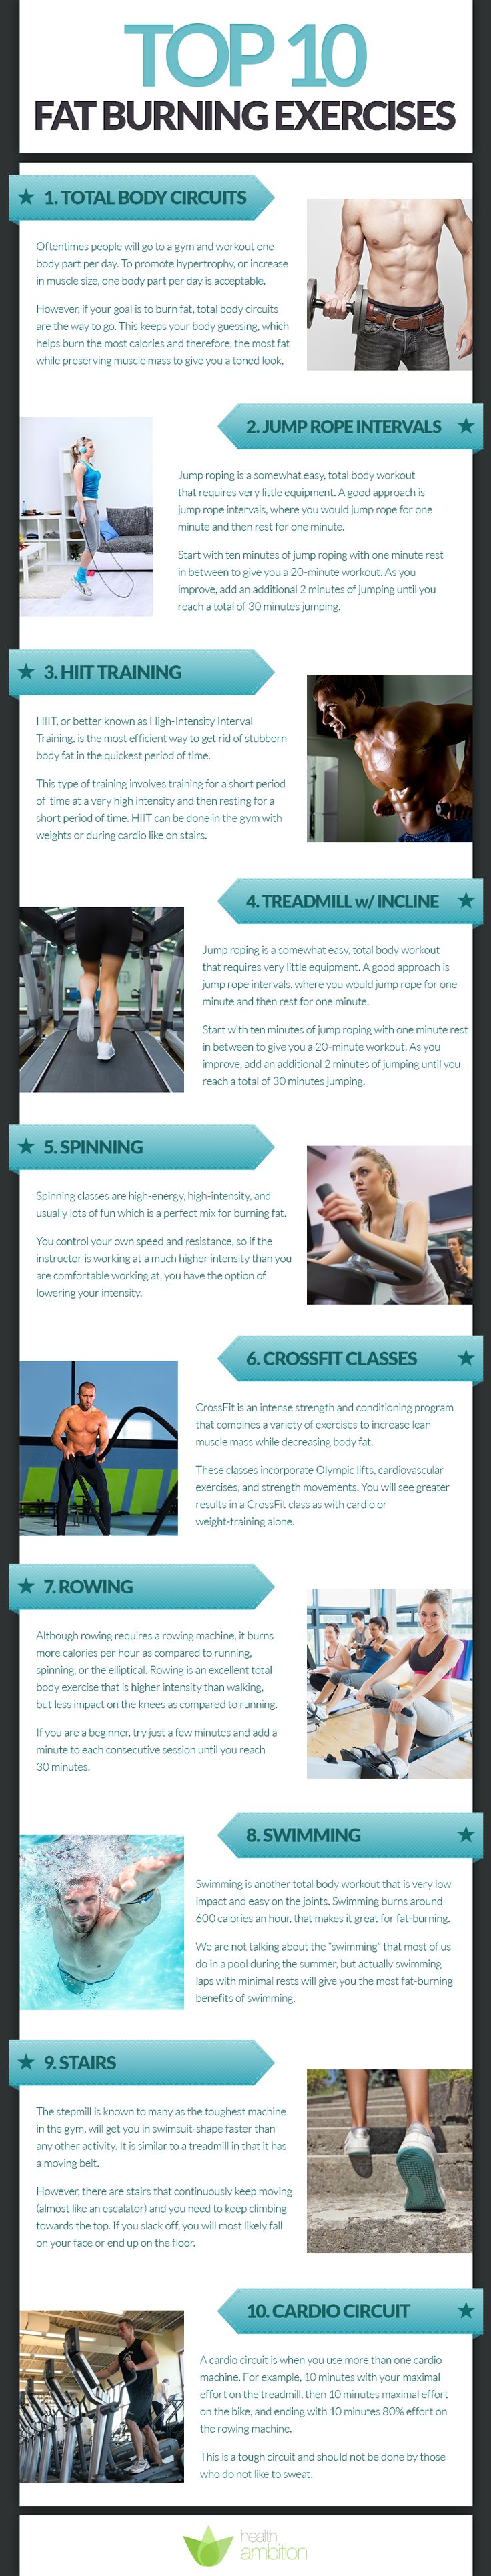 We collected the top 10 fat burning exercises so that you can work on your weight goals.